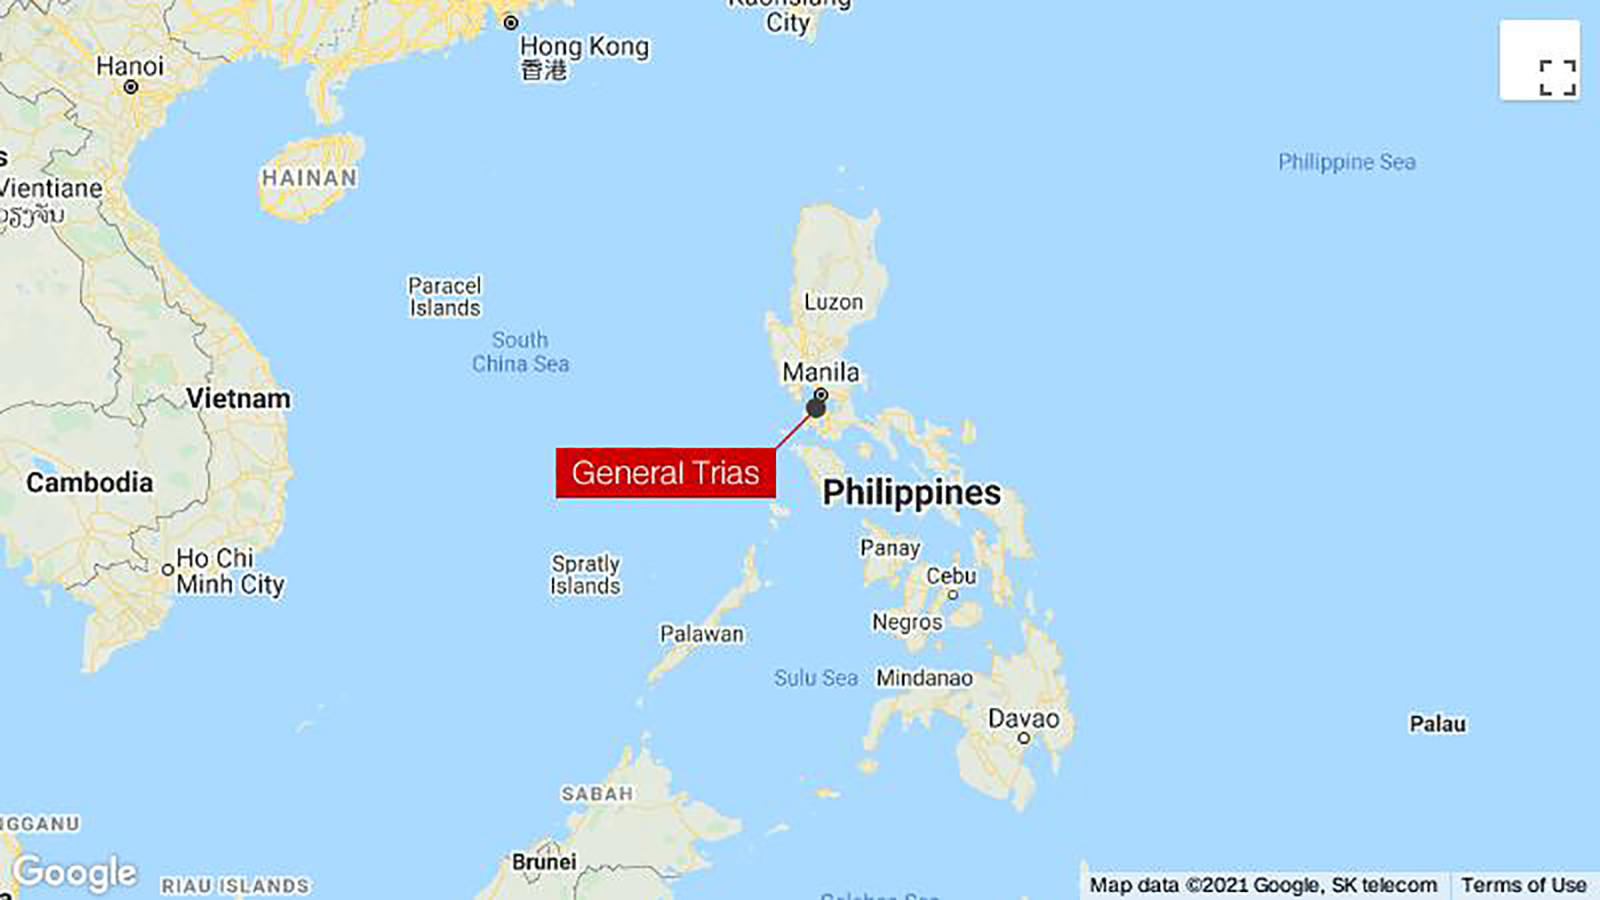 A map shows the location of General Trias in the Philippines.